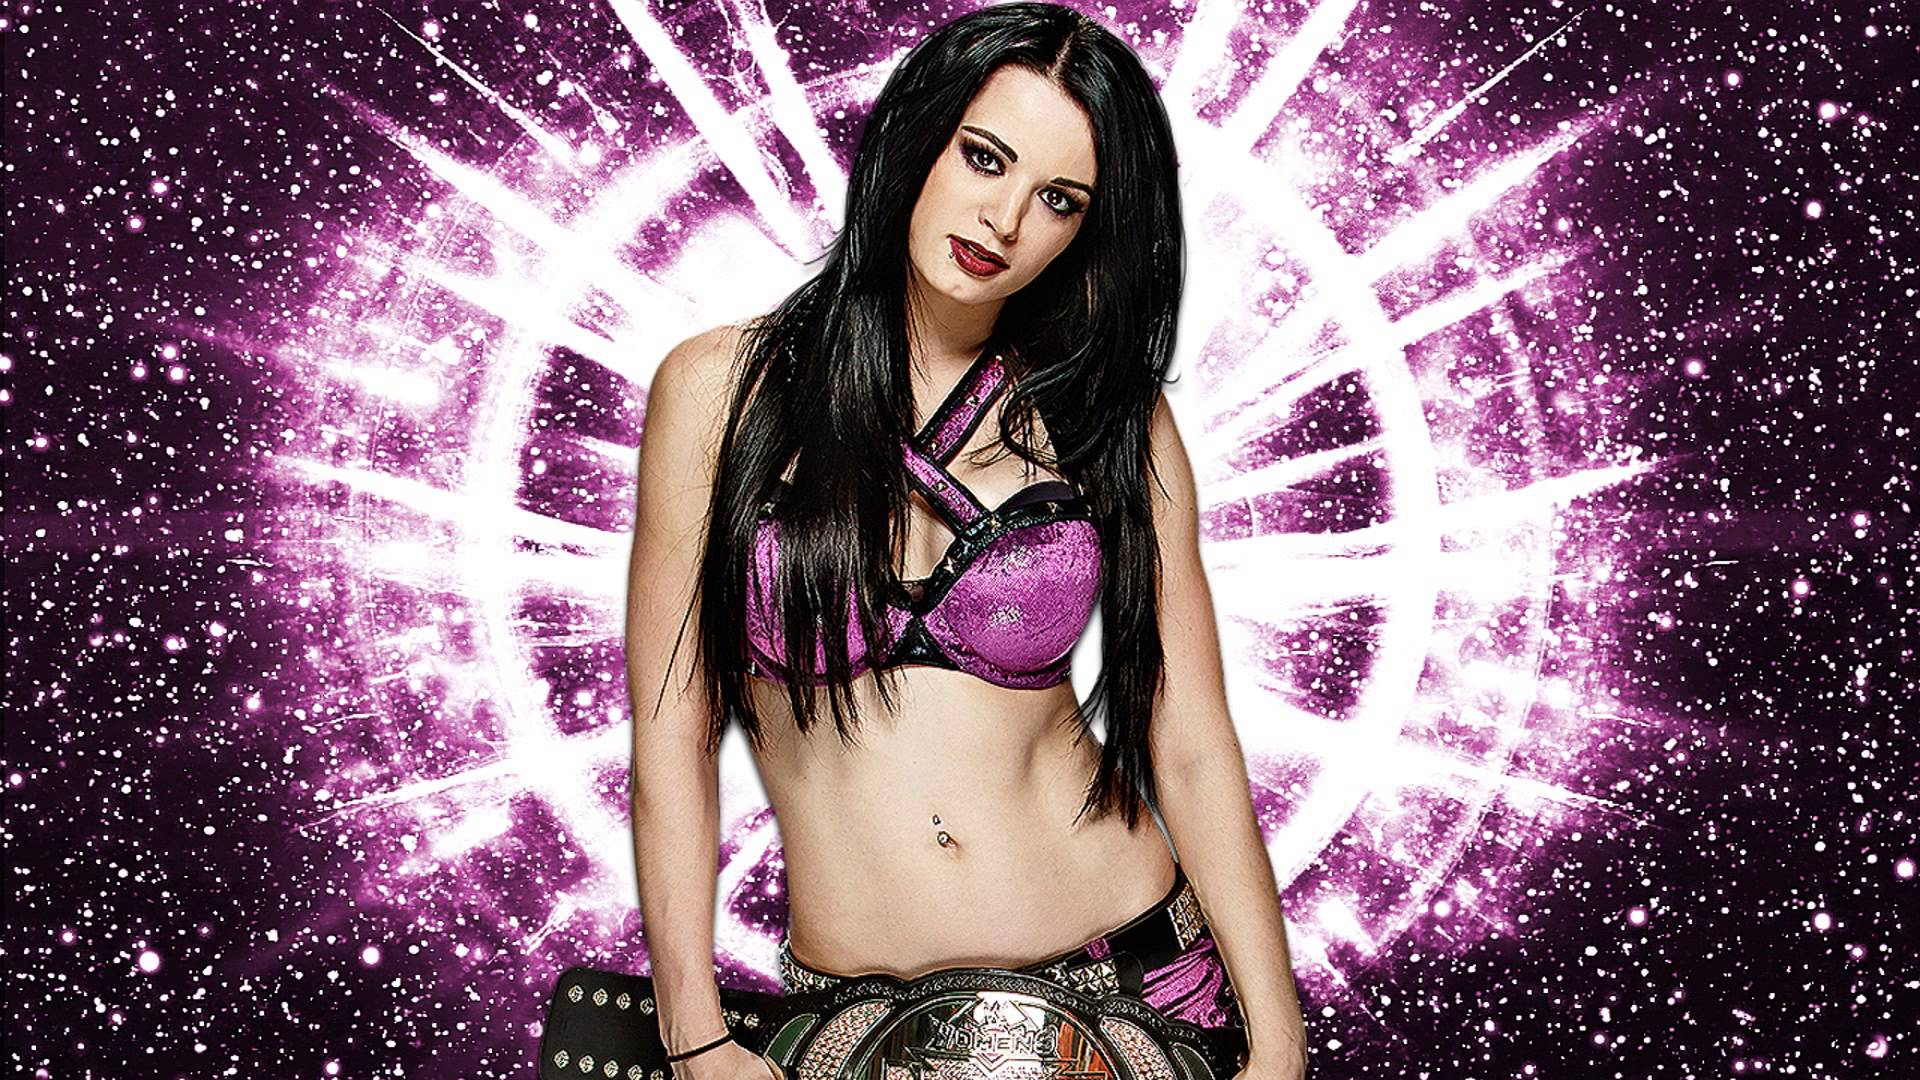 wwe superstars images Paige HD wallpaper and background photos ...